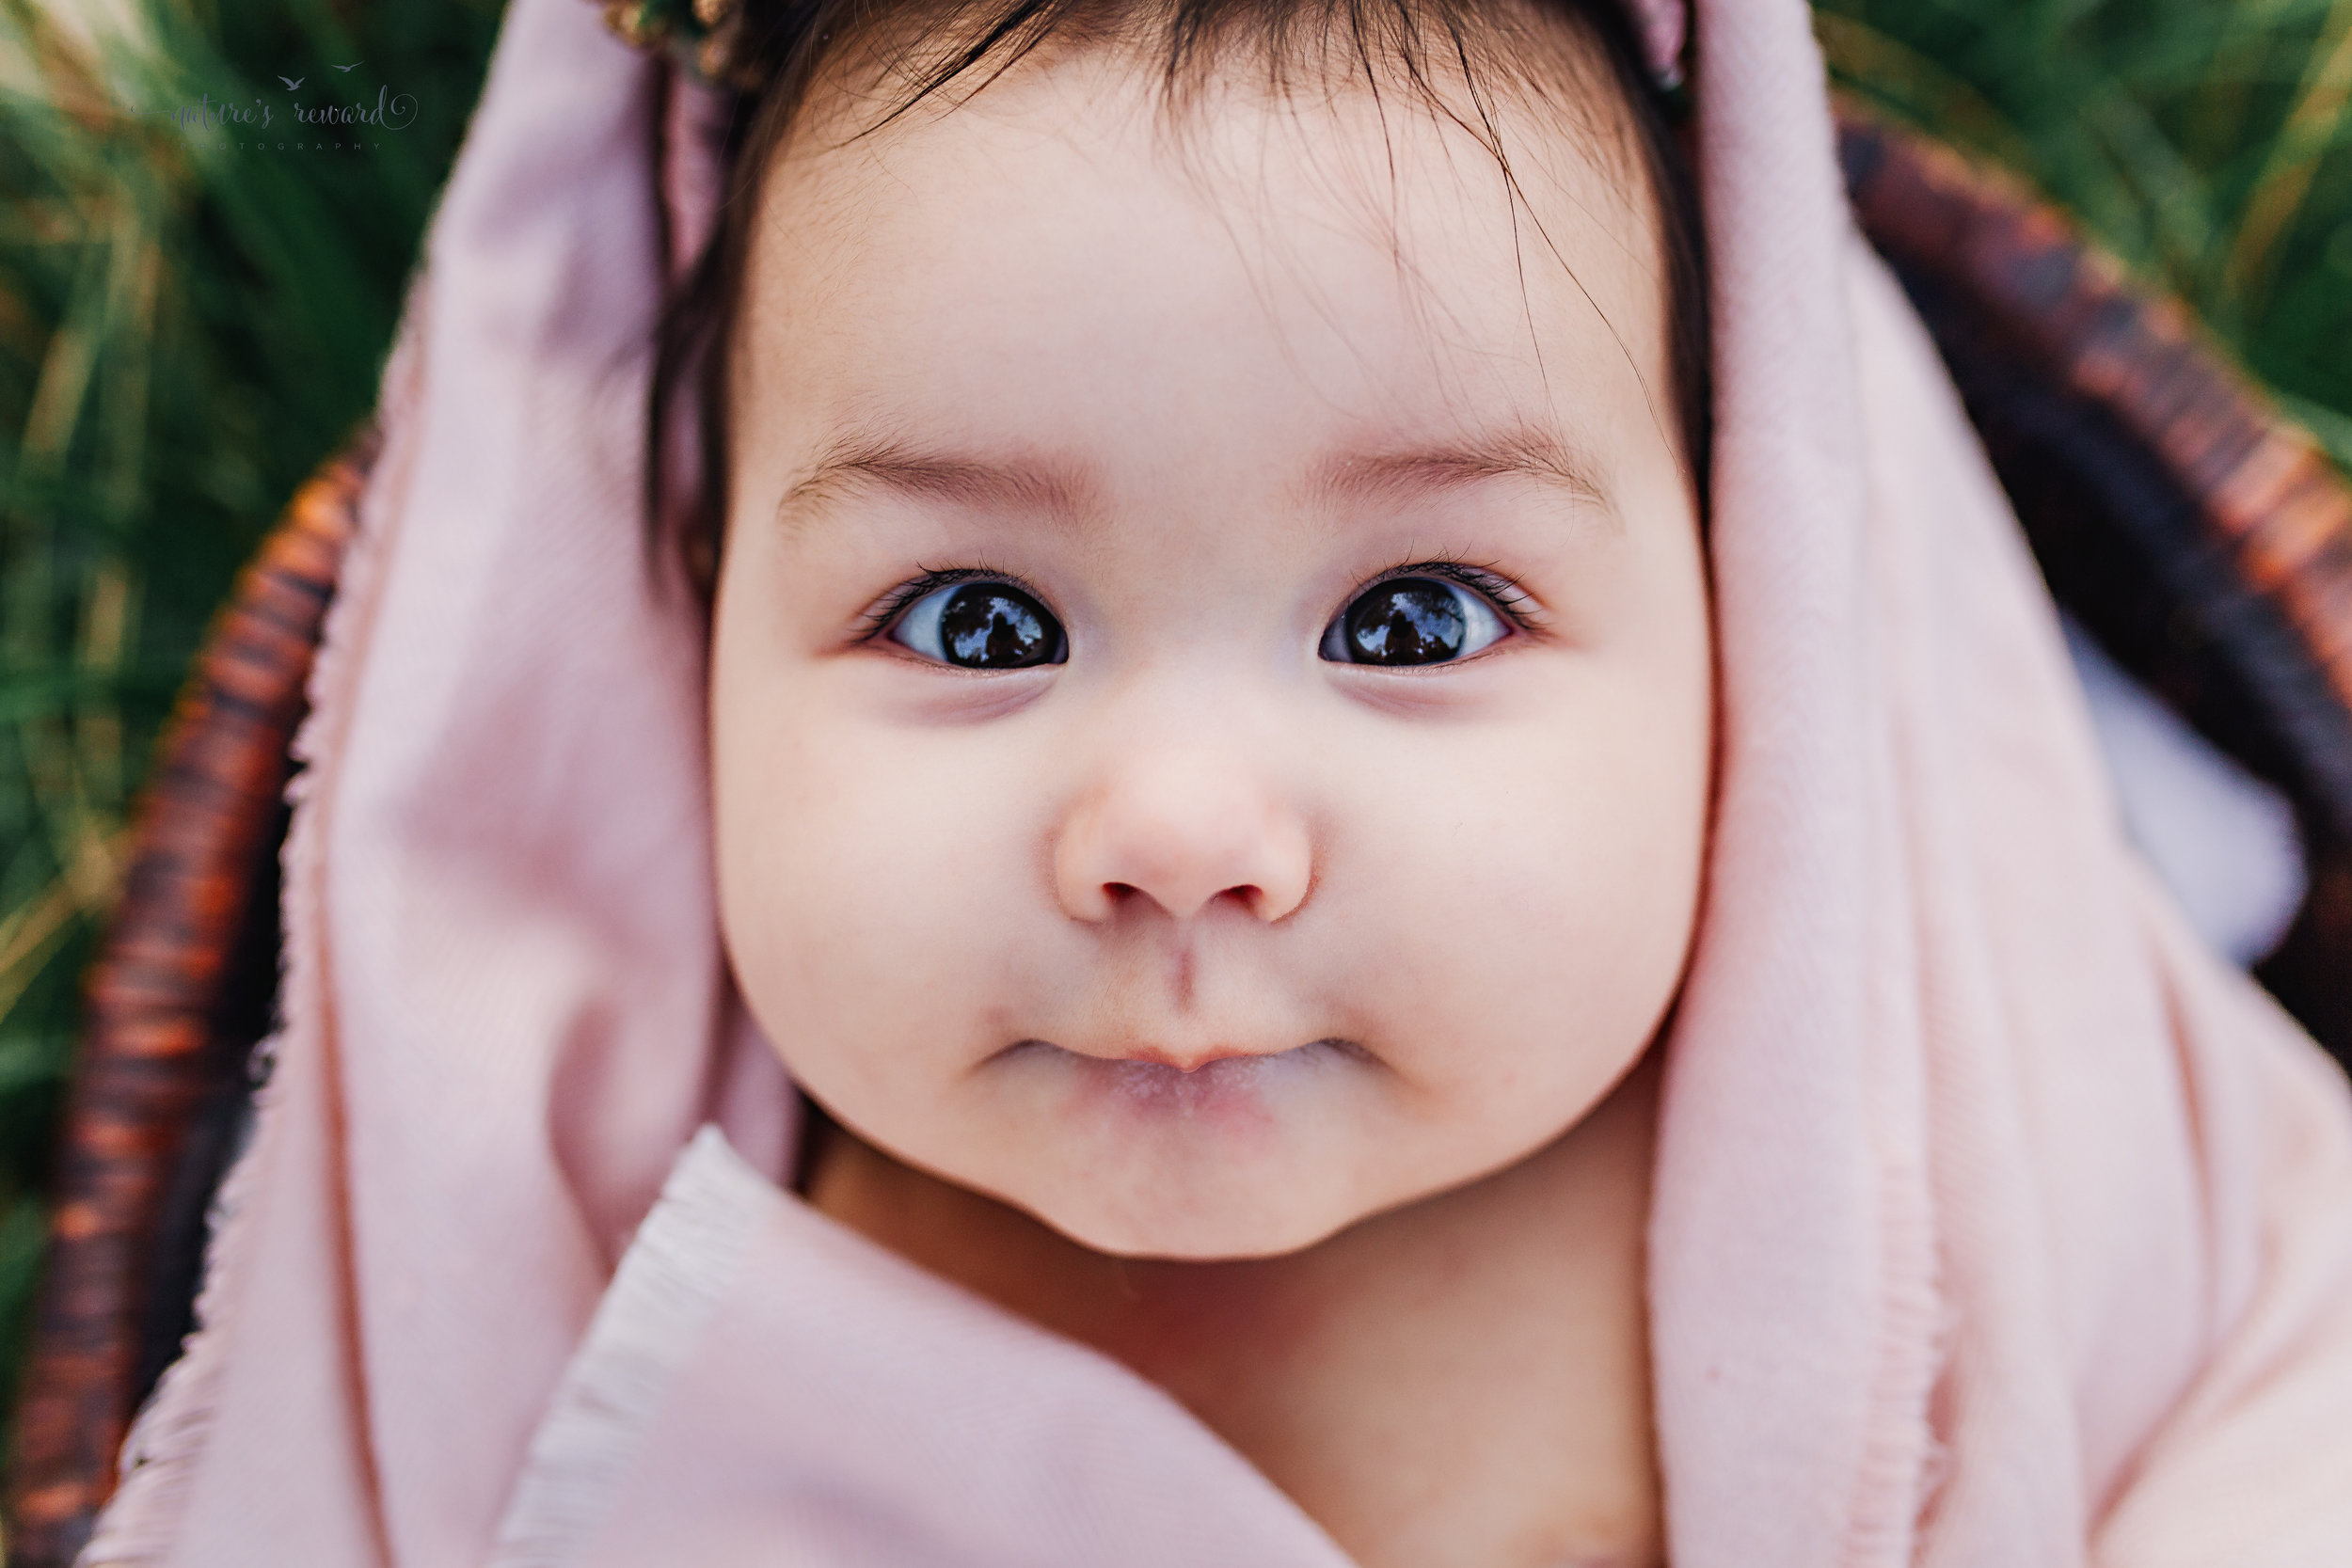 All bundled in the bath! Gorgeous eye connection and the cutest face from this baby girl after her bath is this lovely sitter portrait by Nature's Reward Photography